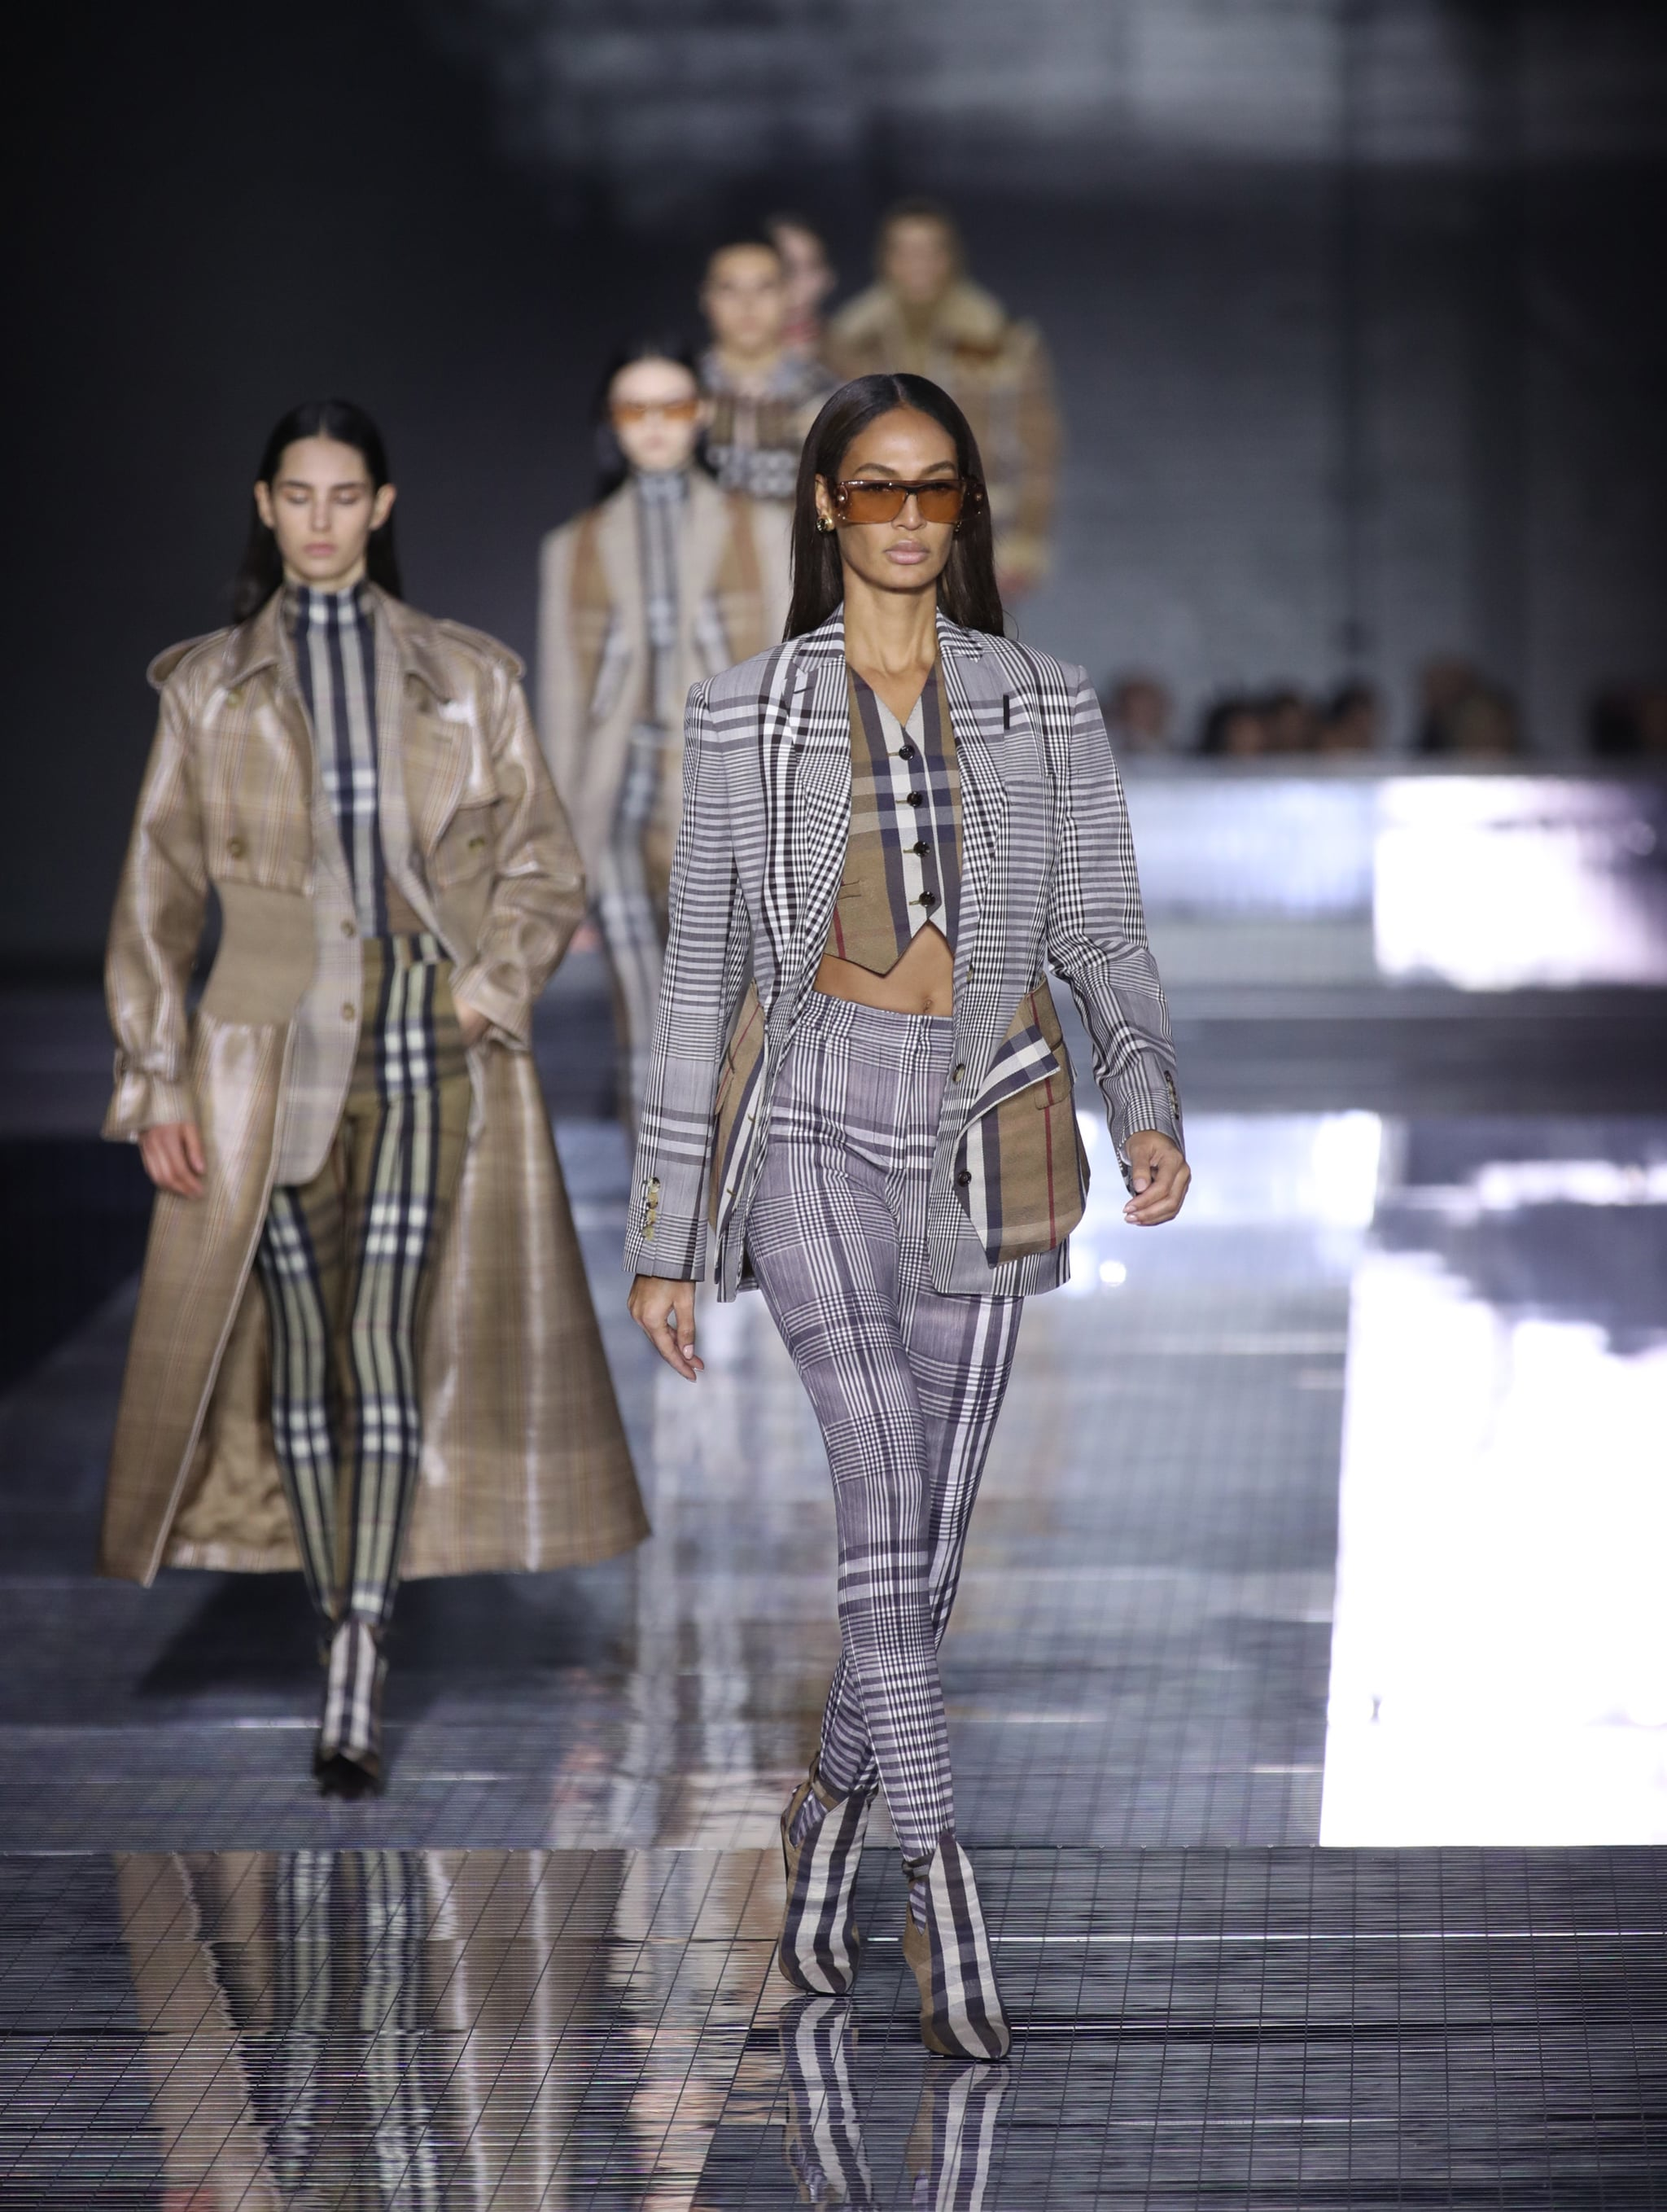 LONDON, ENGLAND - FEBRUARY 17: Joan Smalls walks the runway at the Burberry  show during London Fashion Week February 2020 on February 17, 2020 in London, England. (Photo by Mike Marsland/WireImage)